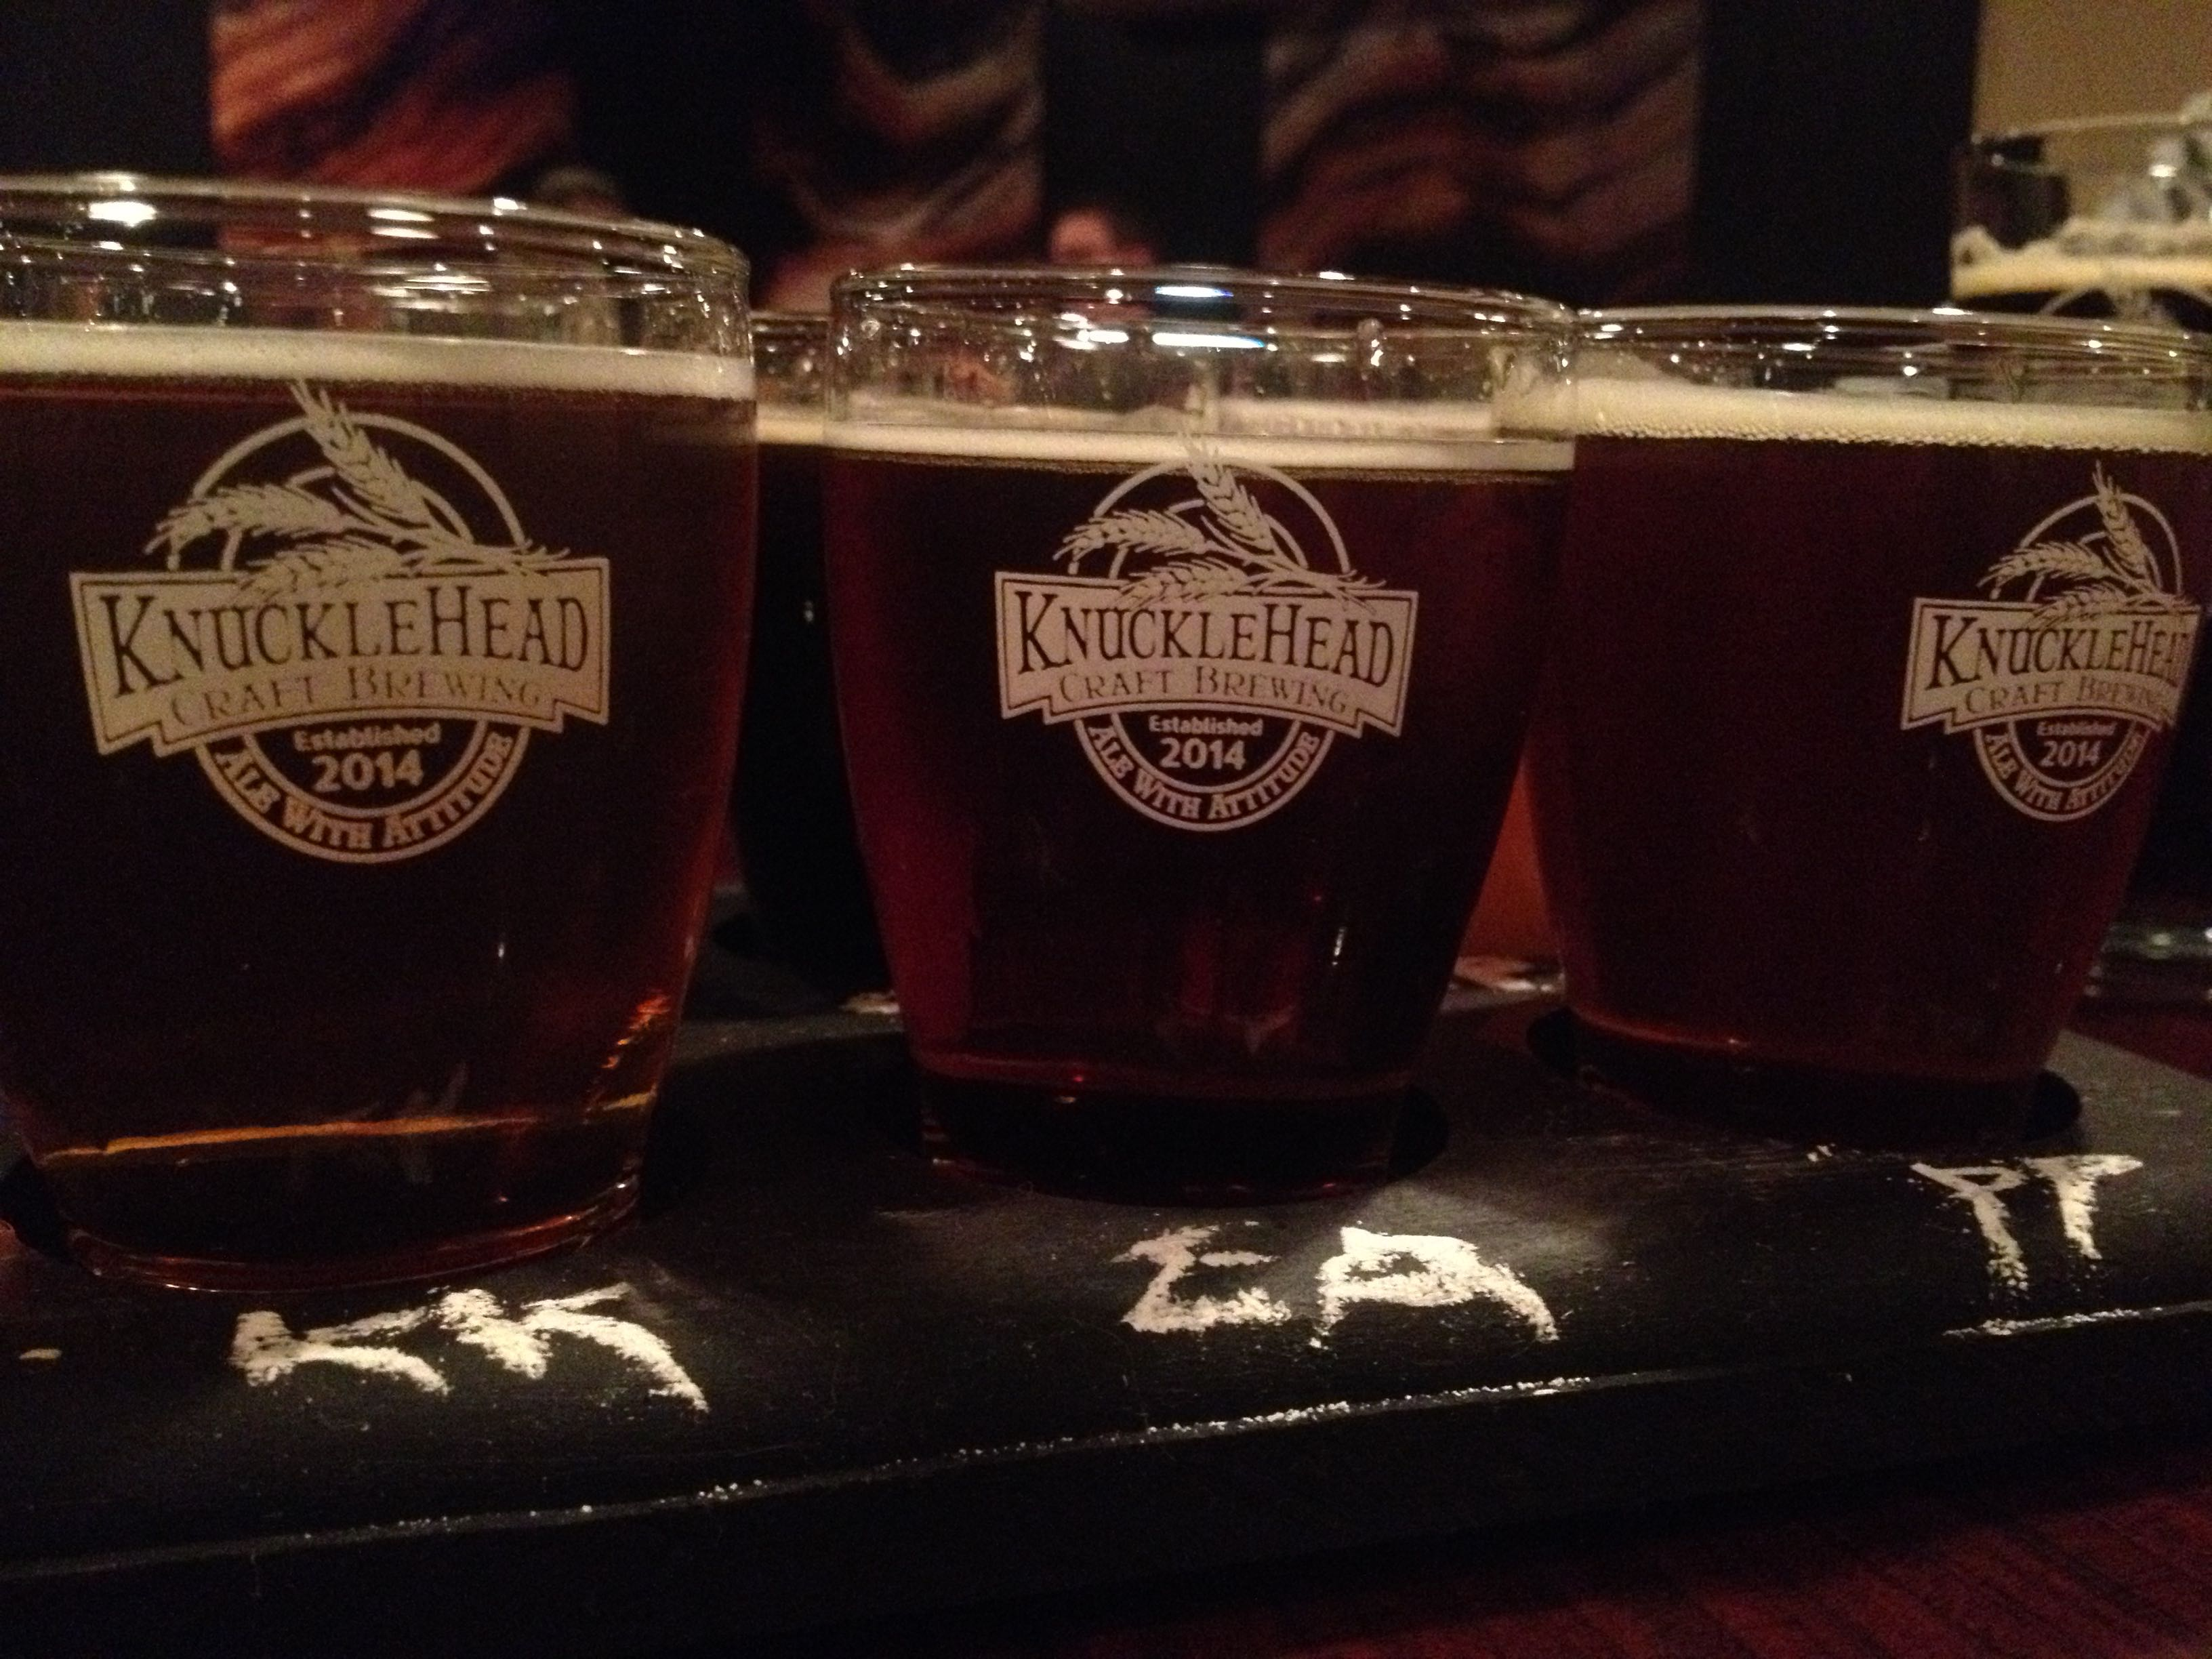 knucklehead-craft-brewing-flight